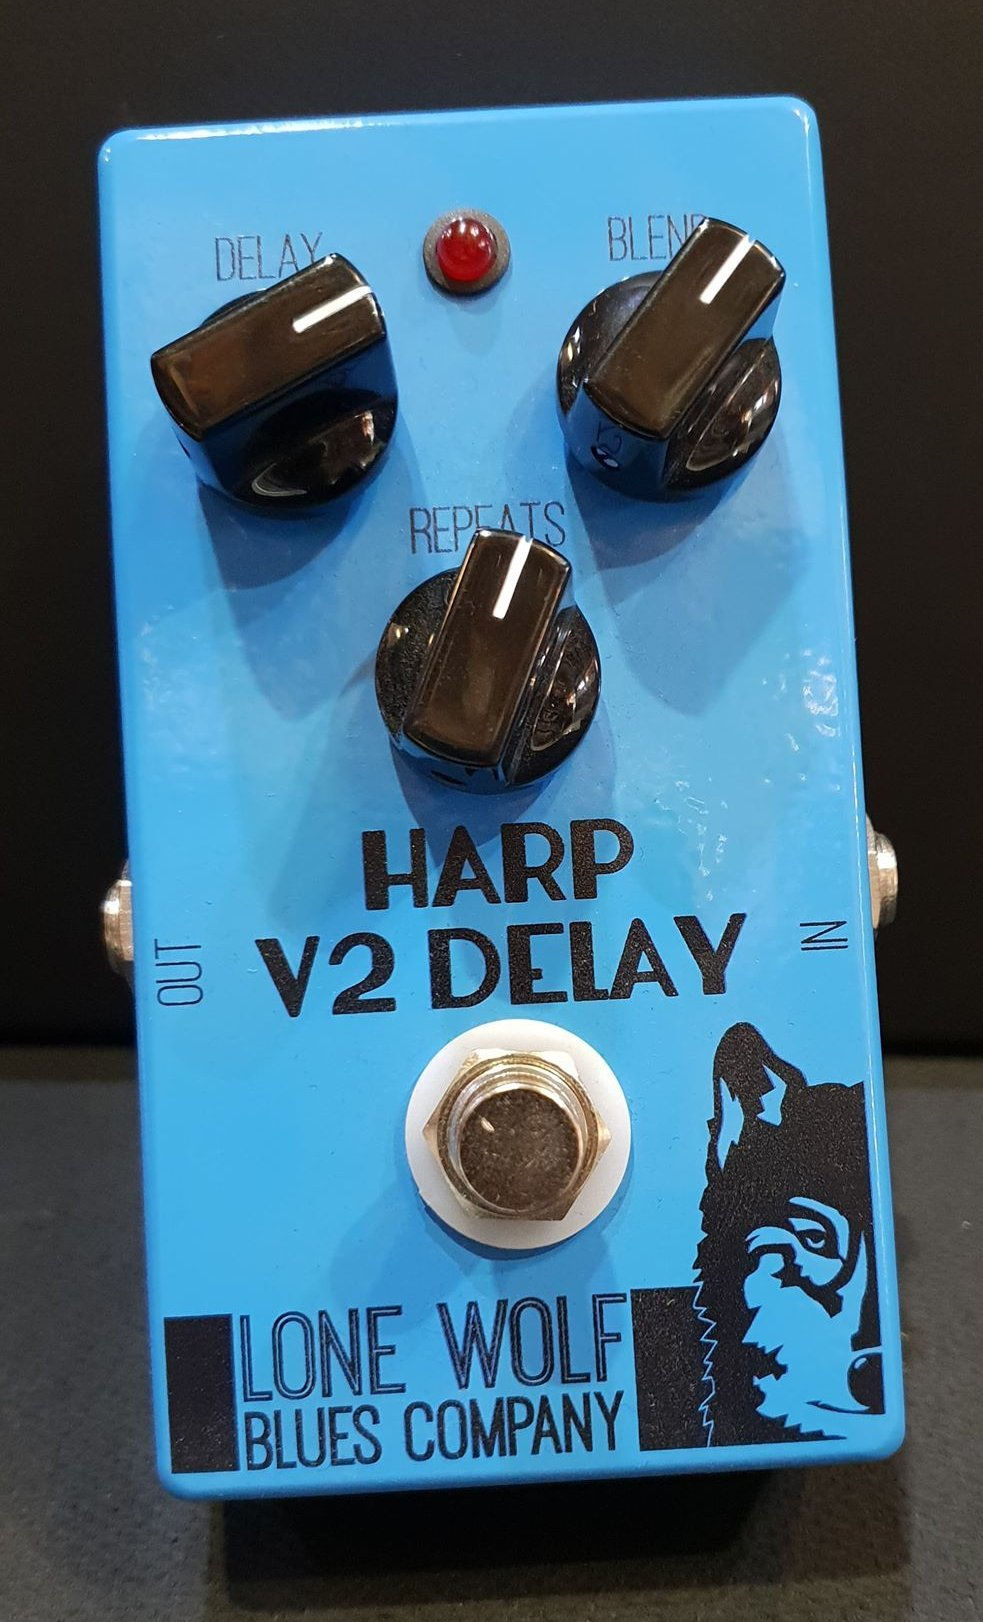 LONE WOLF BLUES COMPANY - HARP DELAY v2